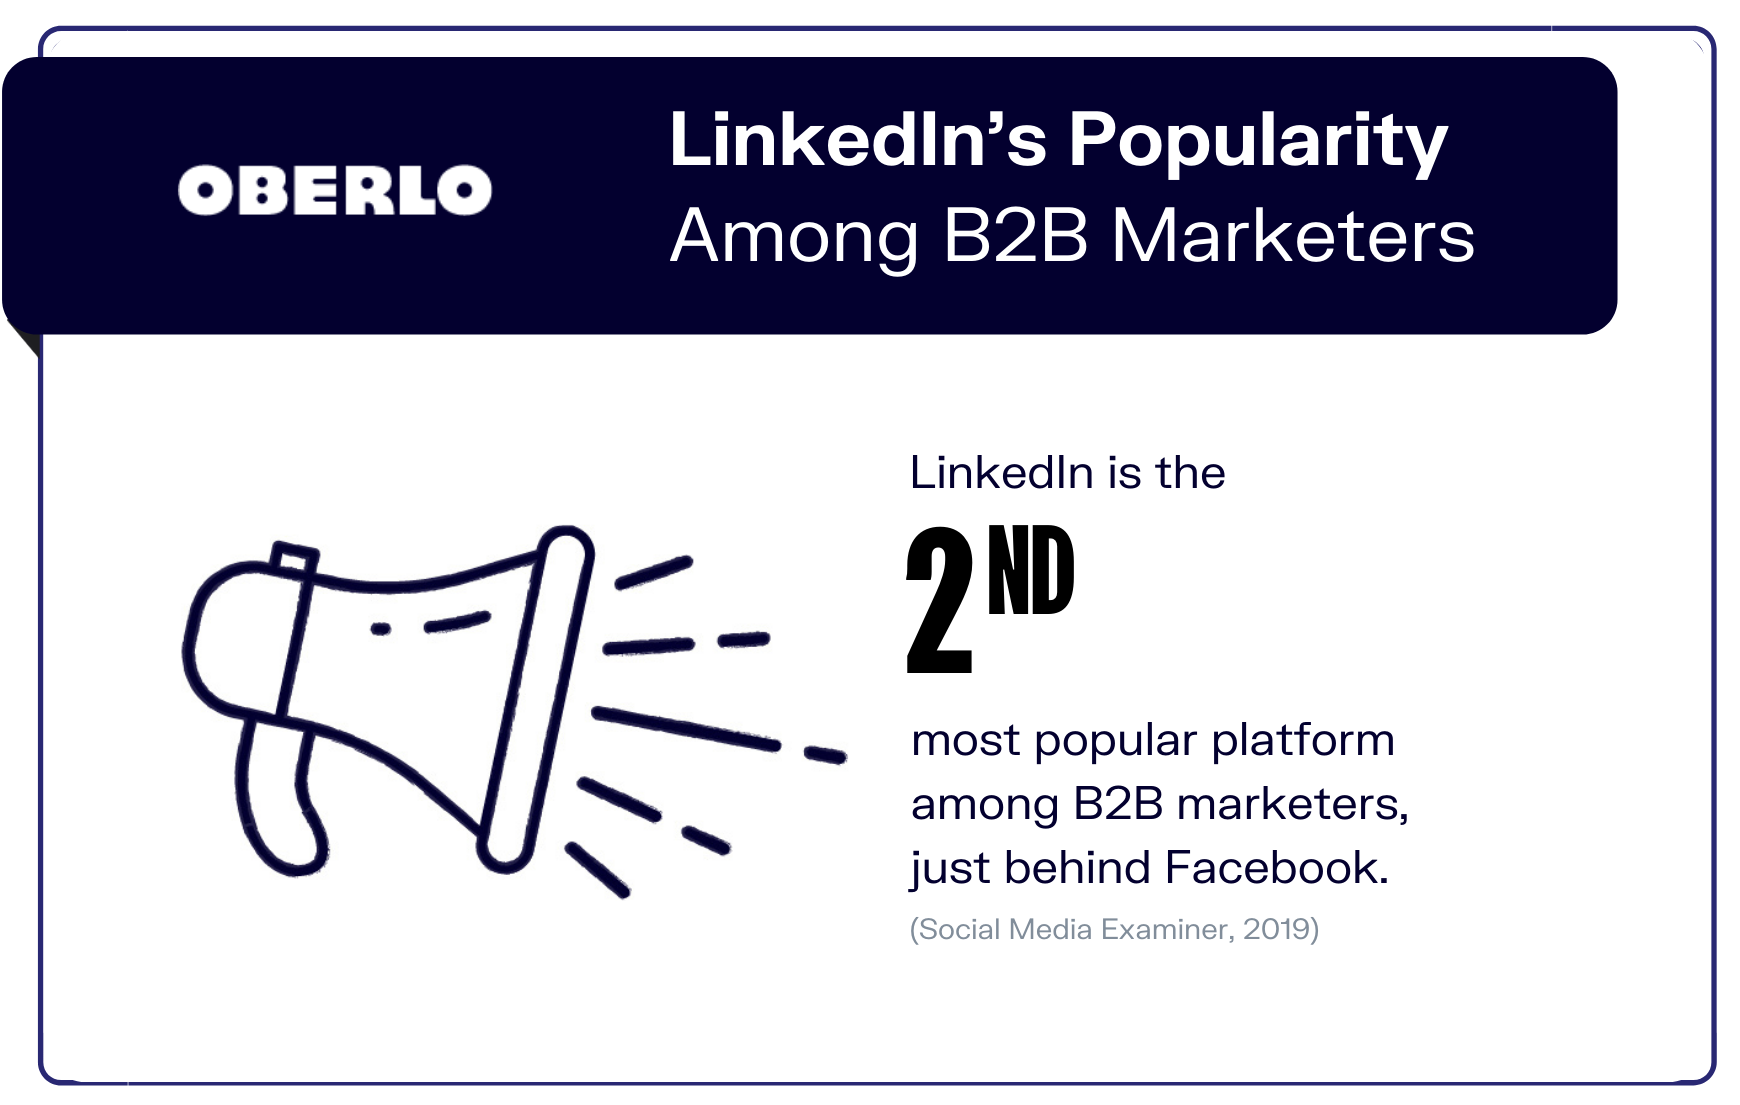 LinkedIn's Popularity Among B2B Marketers graphic